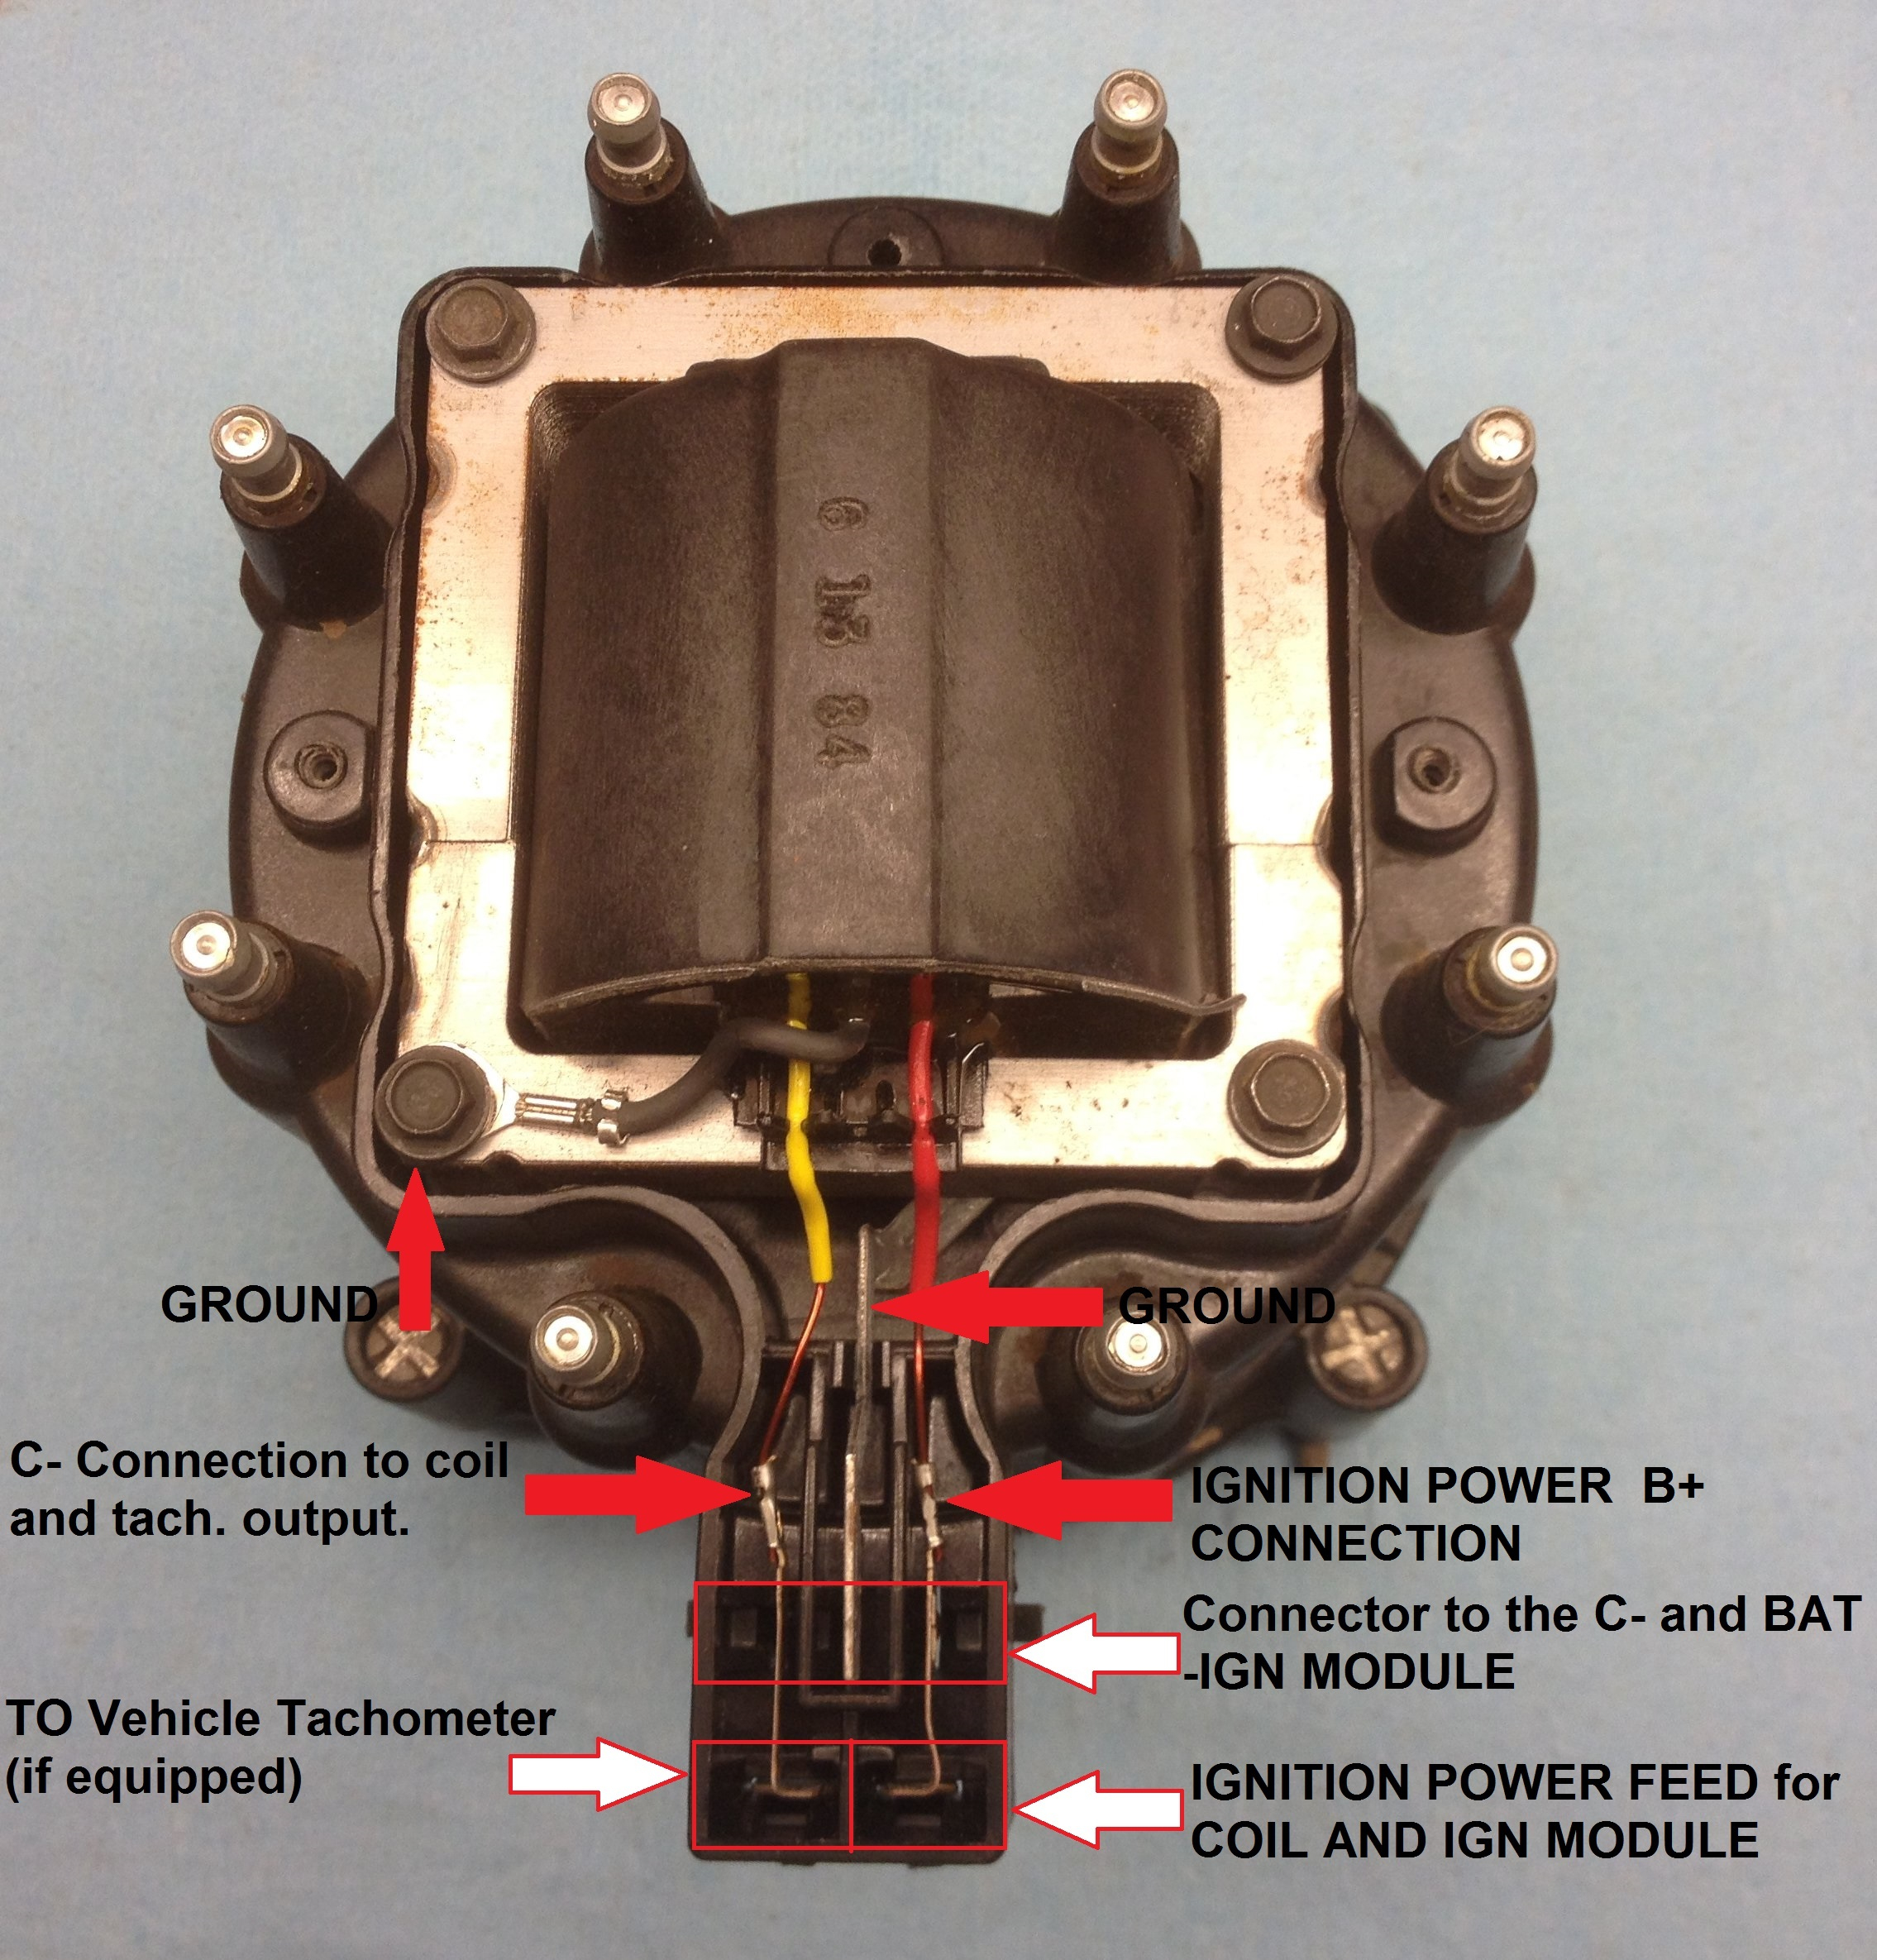 Chevrolet 350 Hei Wiring Diagram - Wiring Diagram Recent justify-leader -  justify-leader.cosavedereanapoli.itjustify-leader.cosavedereanapoli.it